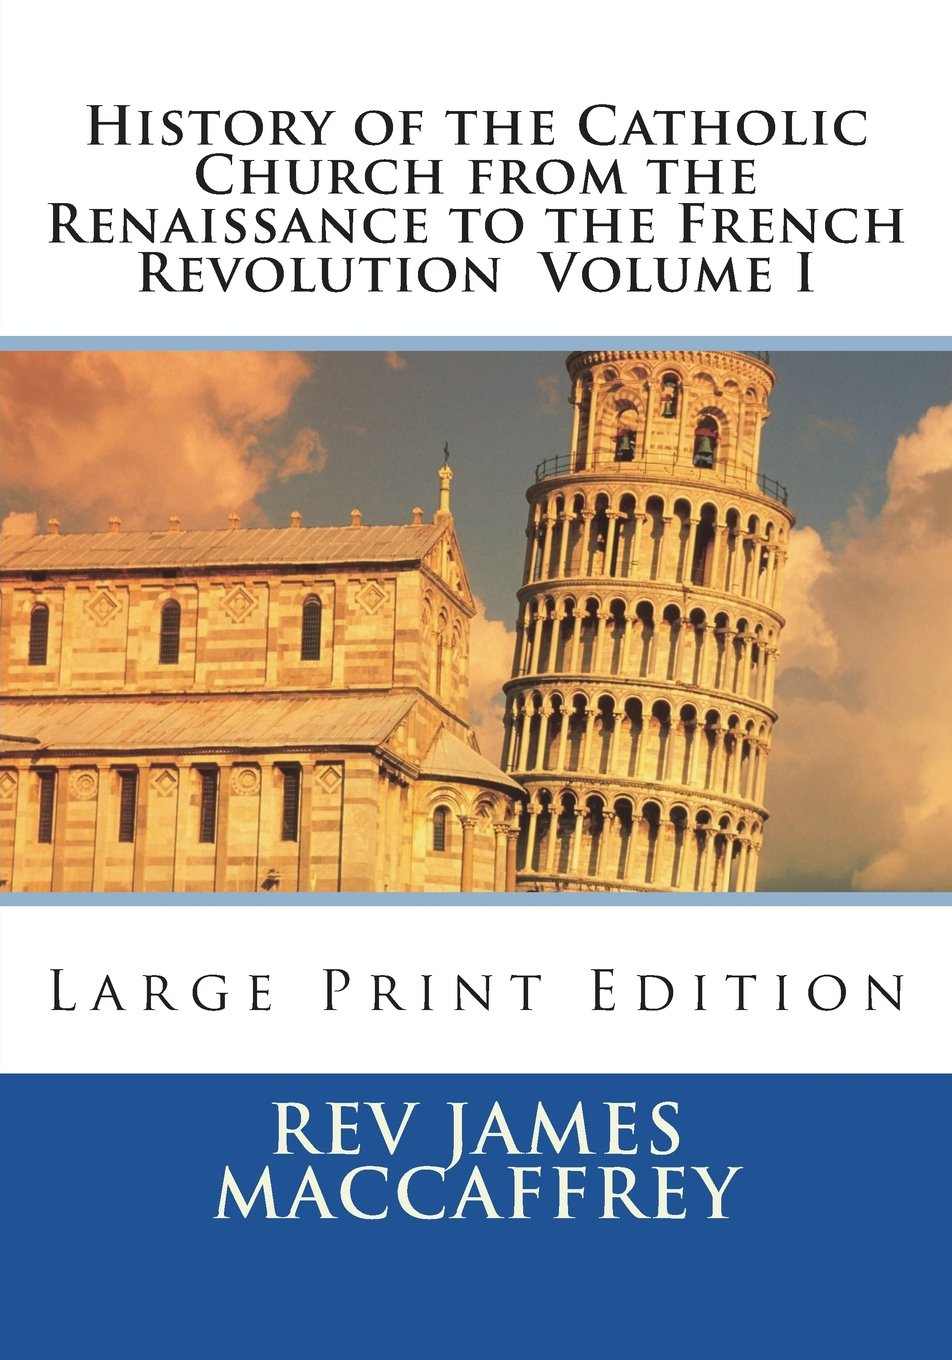 Download History of the Catholic Church from the Renaissance to the French Revolution  Volume I: Large Print Edition ebook